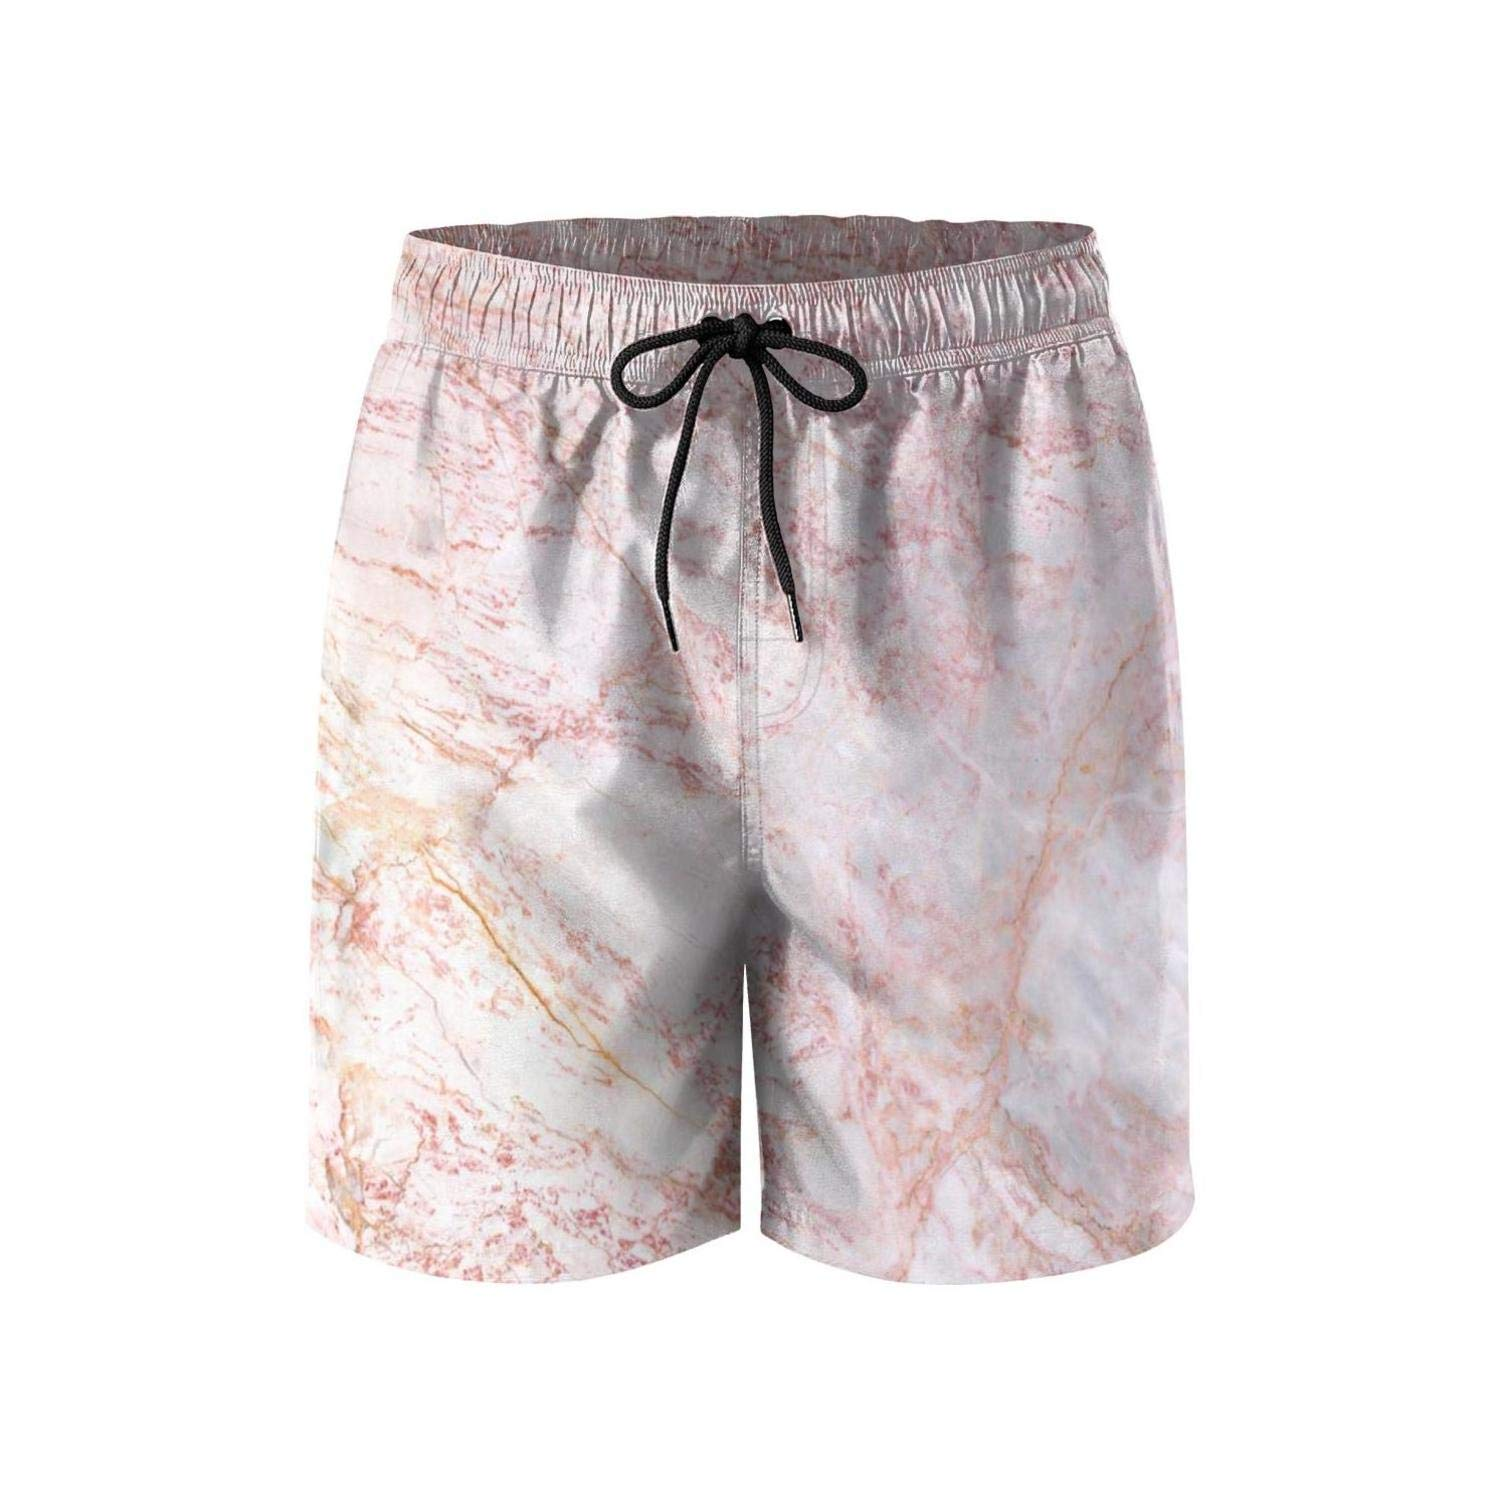 Retro Mens Beach Shorts Rose Gold White Marble Comfortable Volley Shorts for Beach